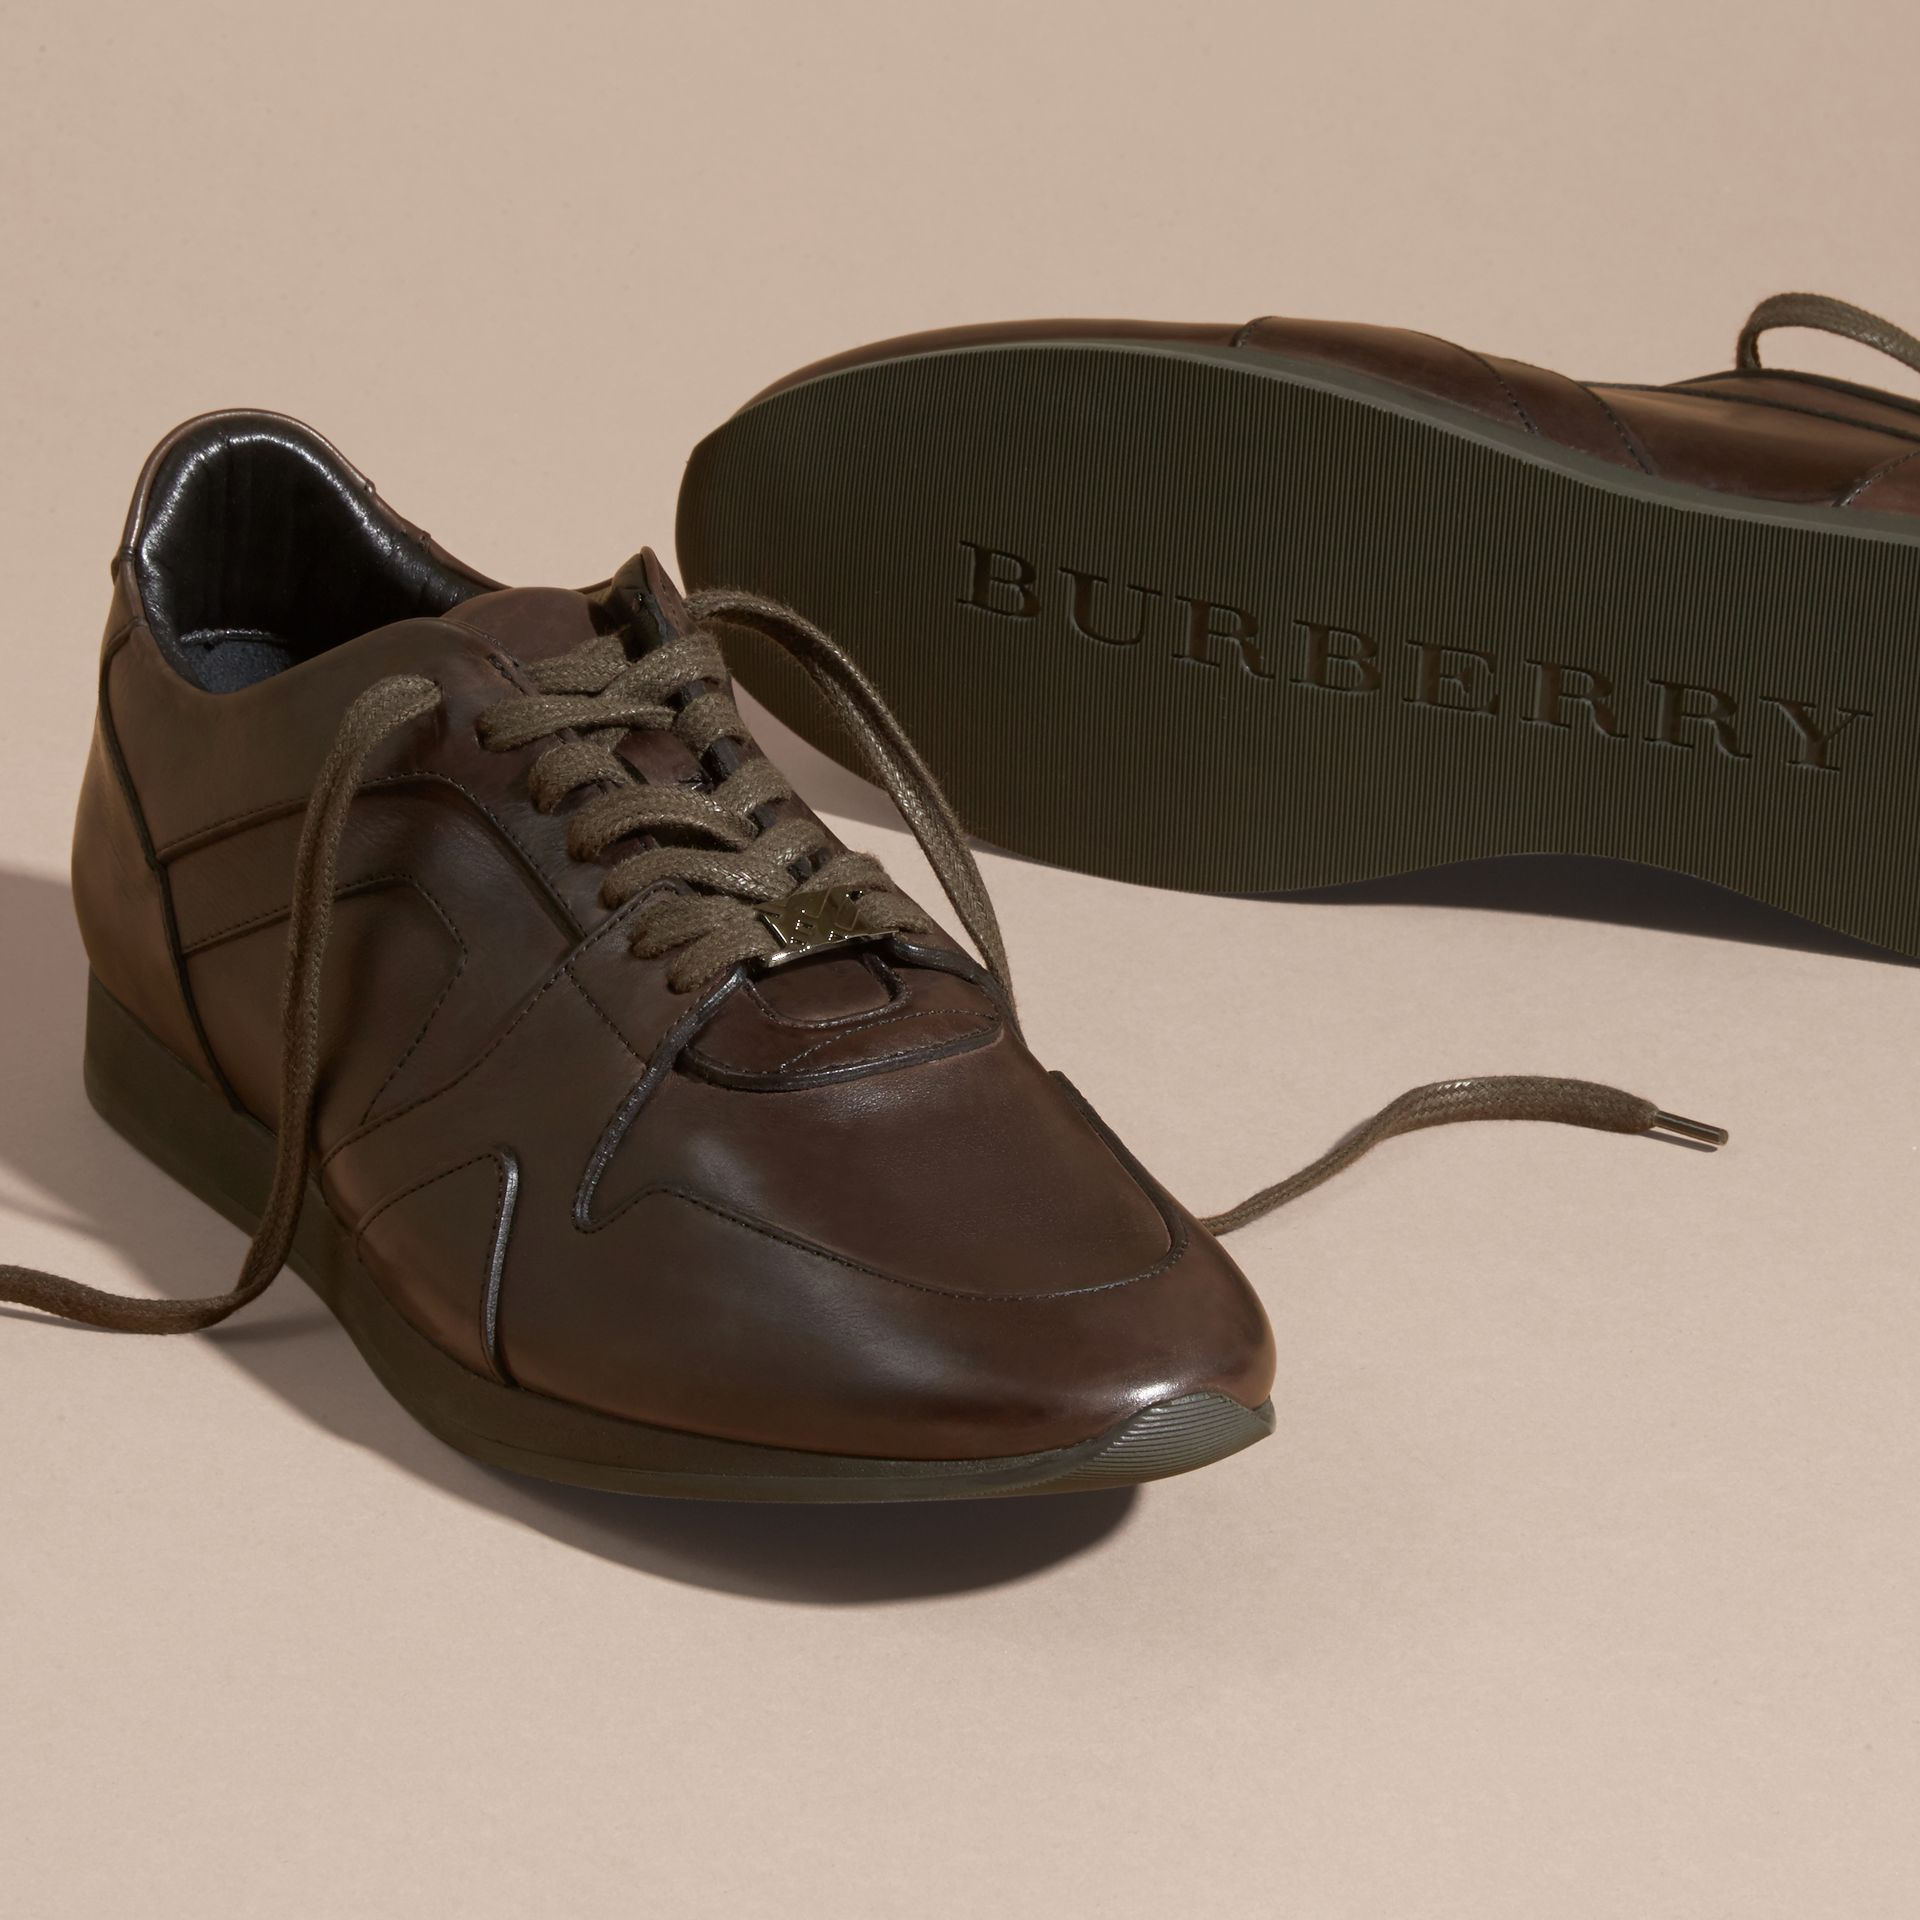 Peppercorn The Field Sneaker in Leather Peppercorn - gallery image 5